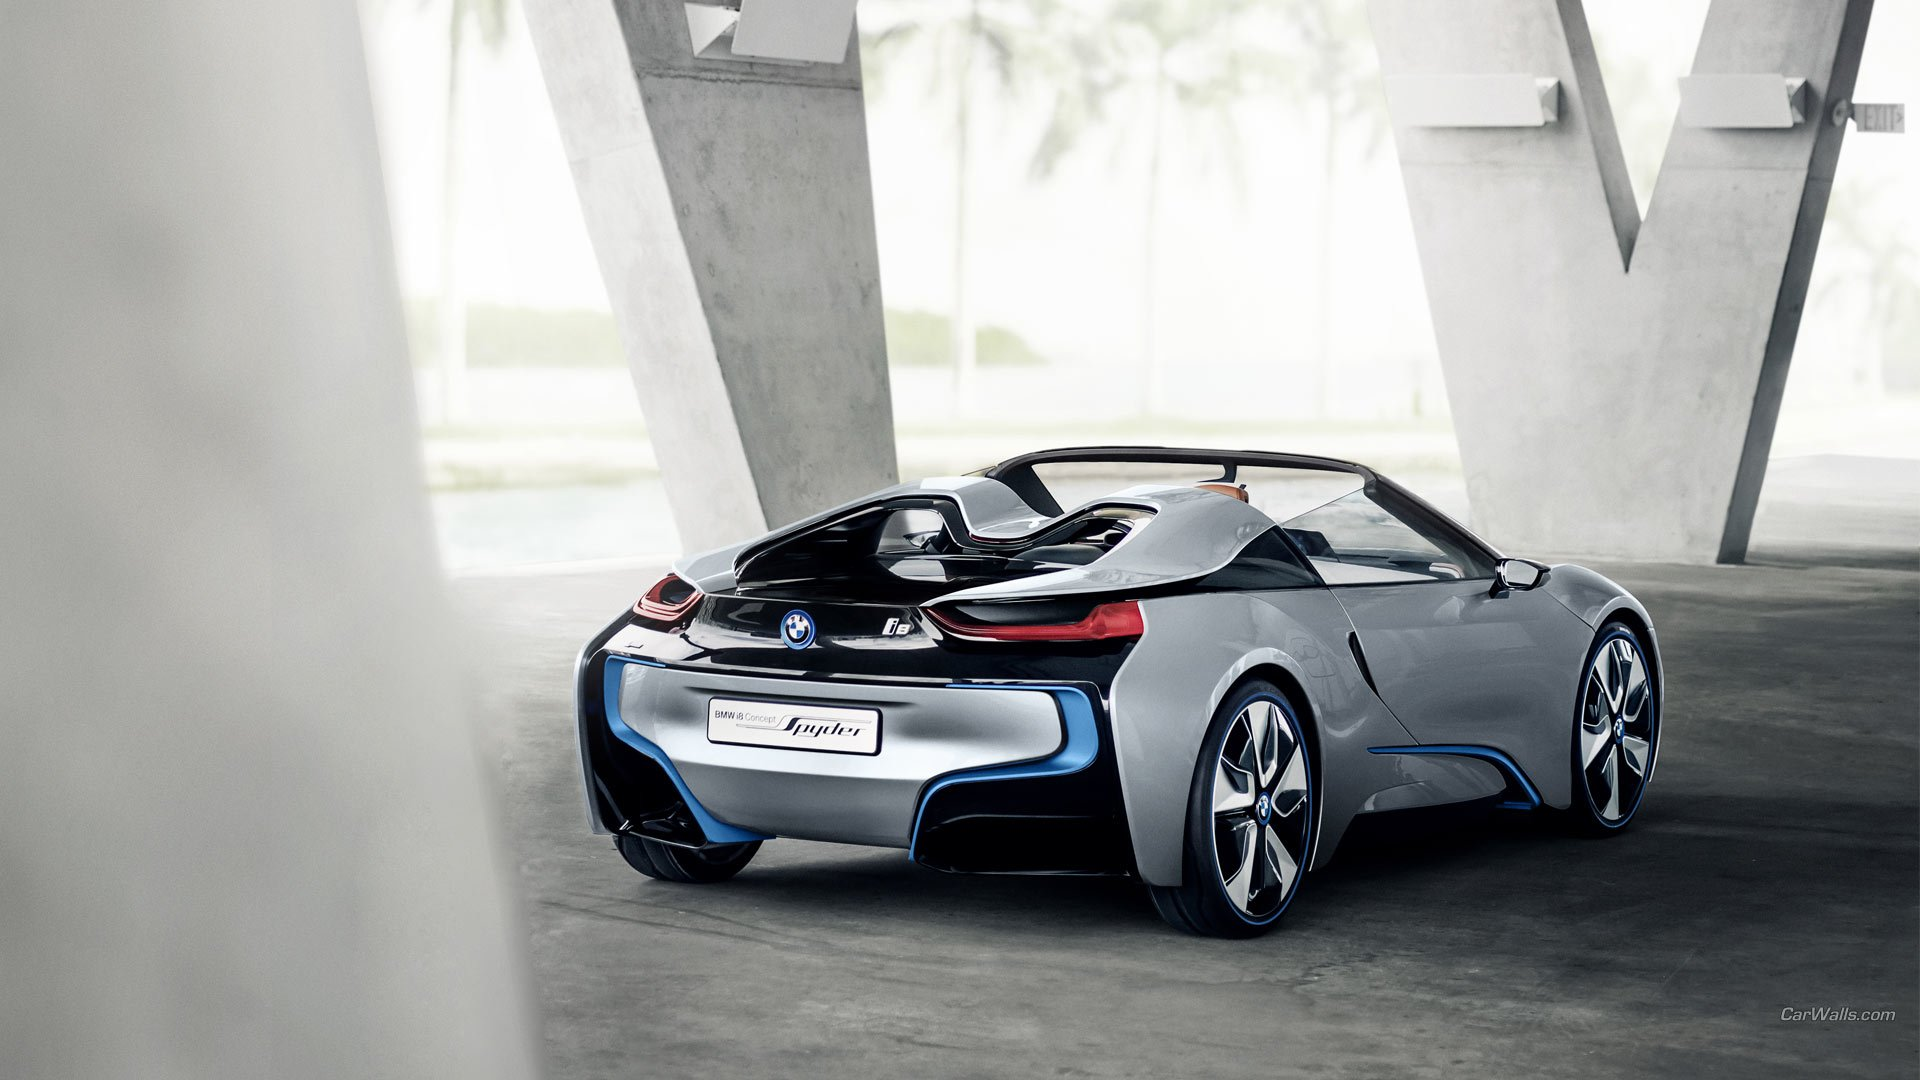 HD Wallpaper | Background Image ID:471032. 1920x1080 Vehicles BMW I8  Concept Spyder